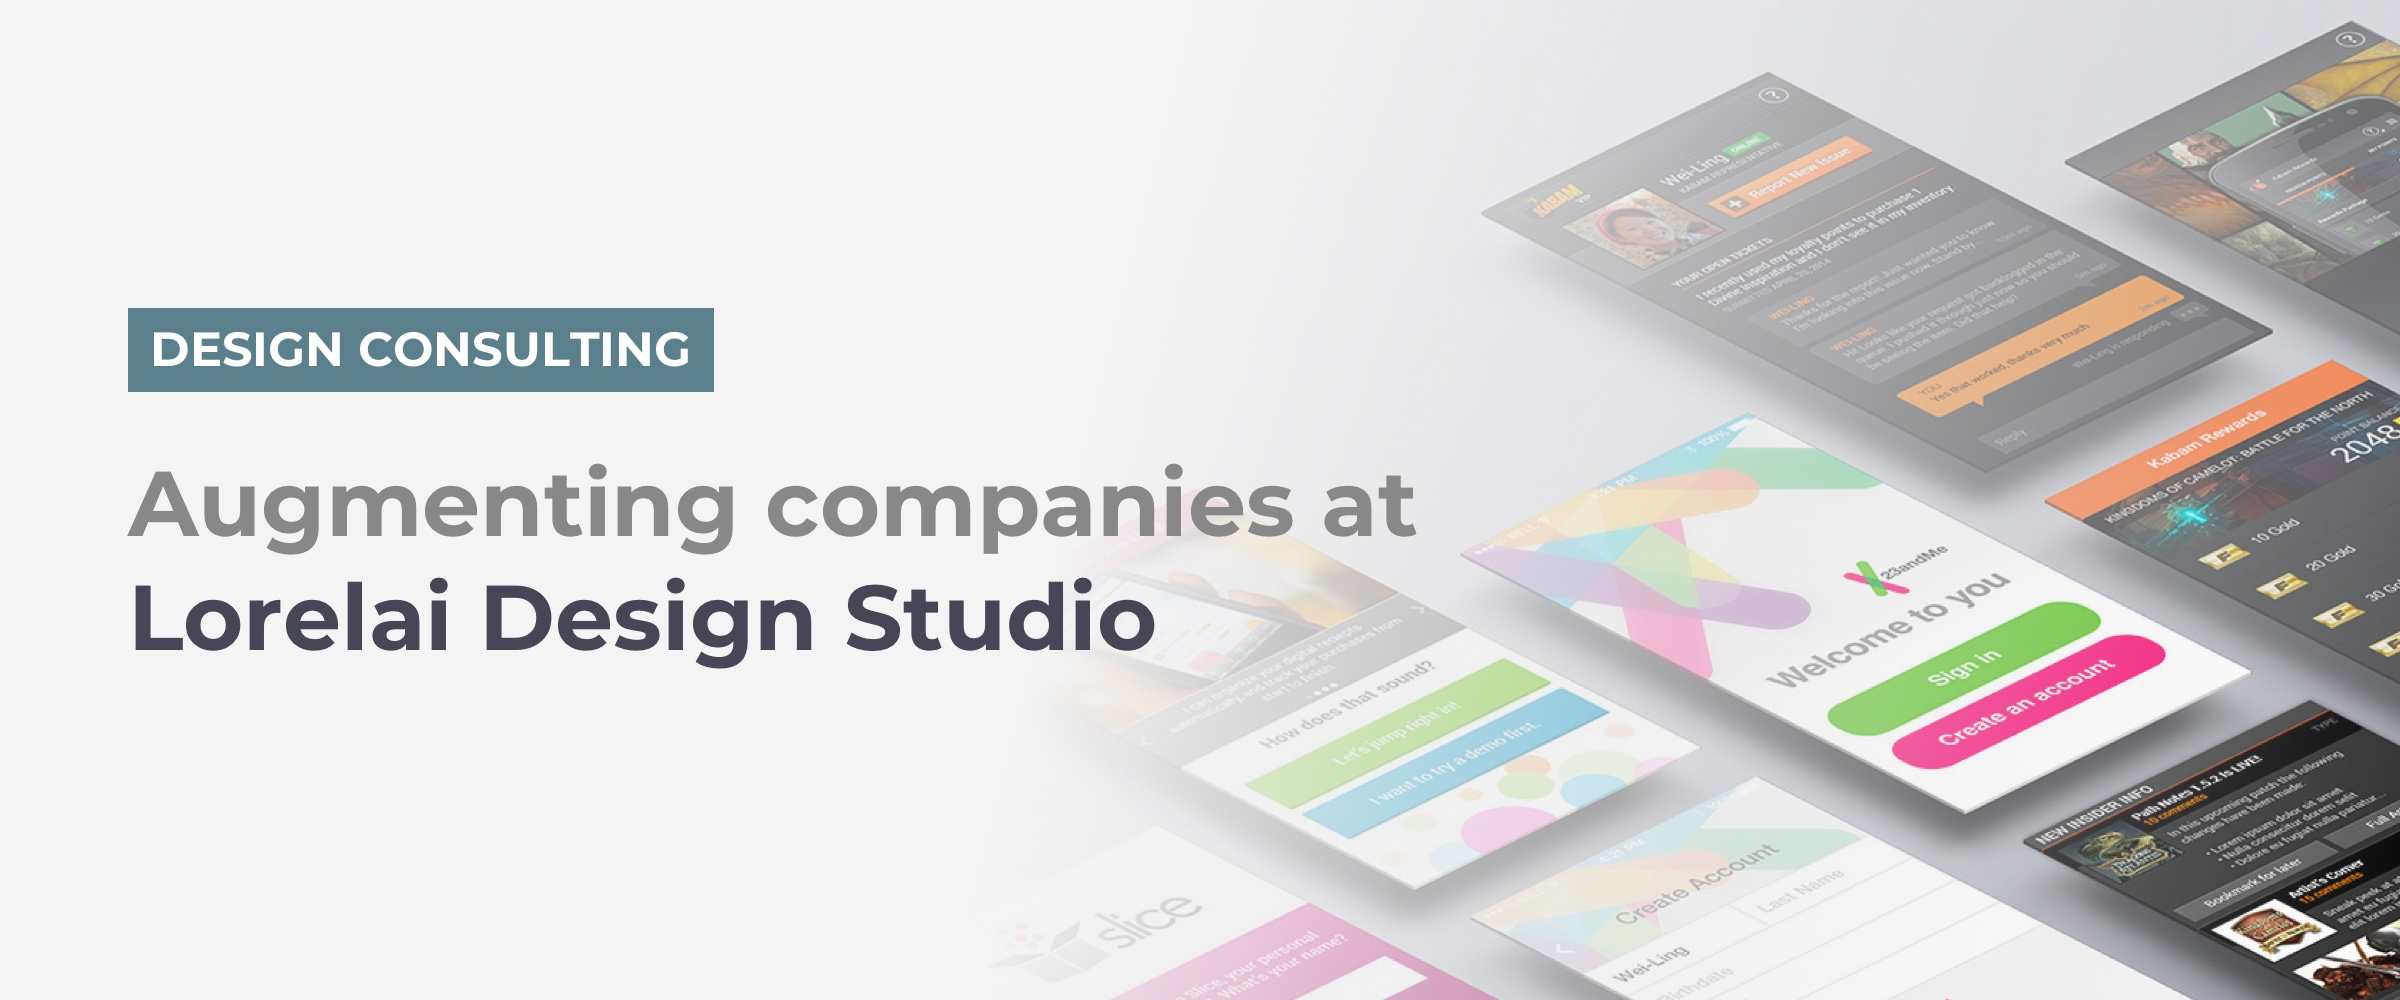 Lorelai Design Studio